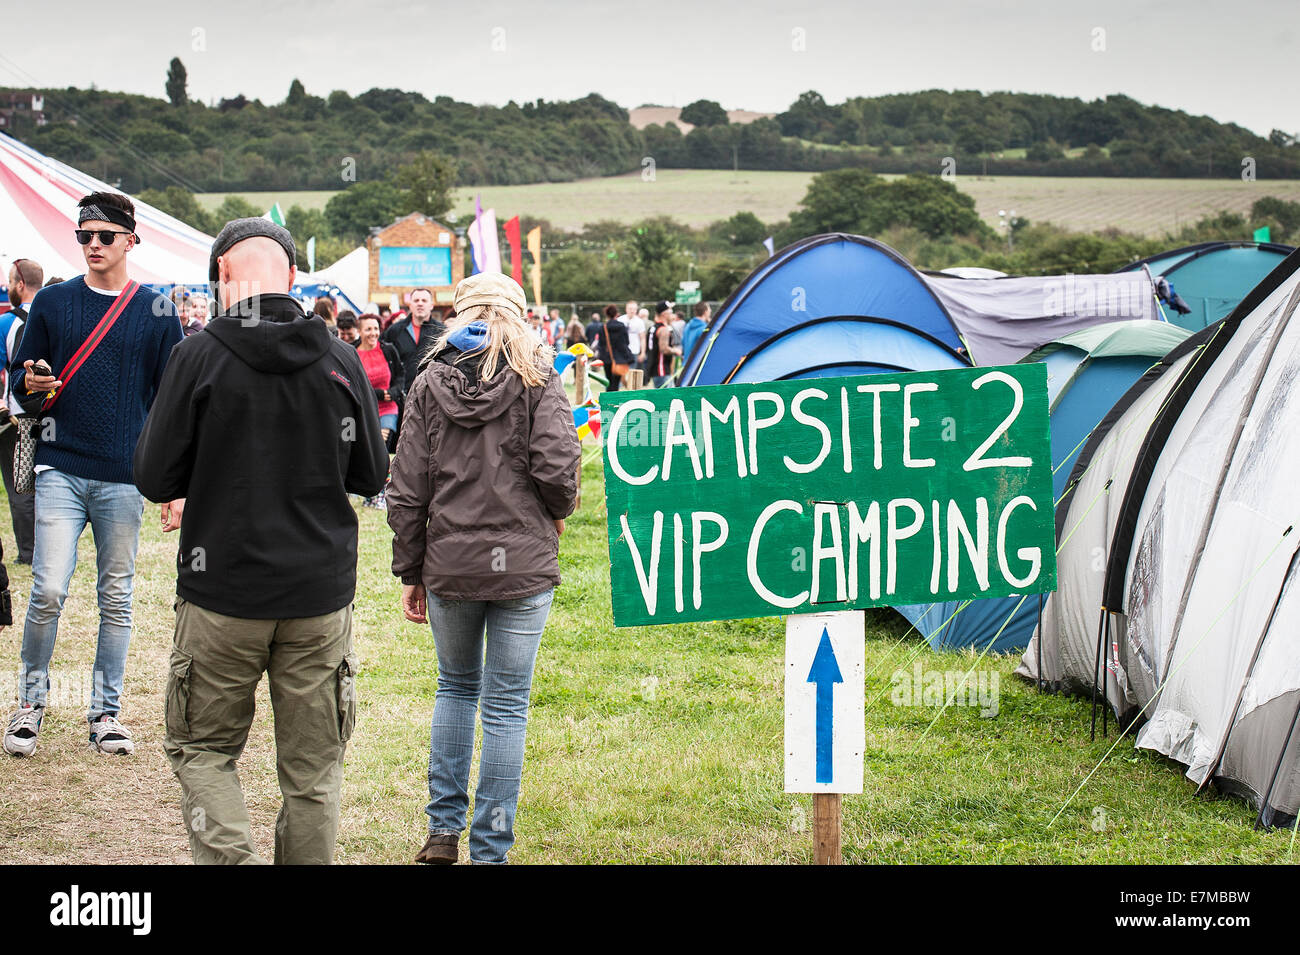 A sign pointing to the VIP camping area at the Brownstock Festival in Essex. - Stock Image